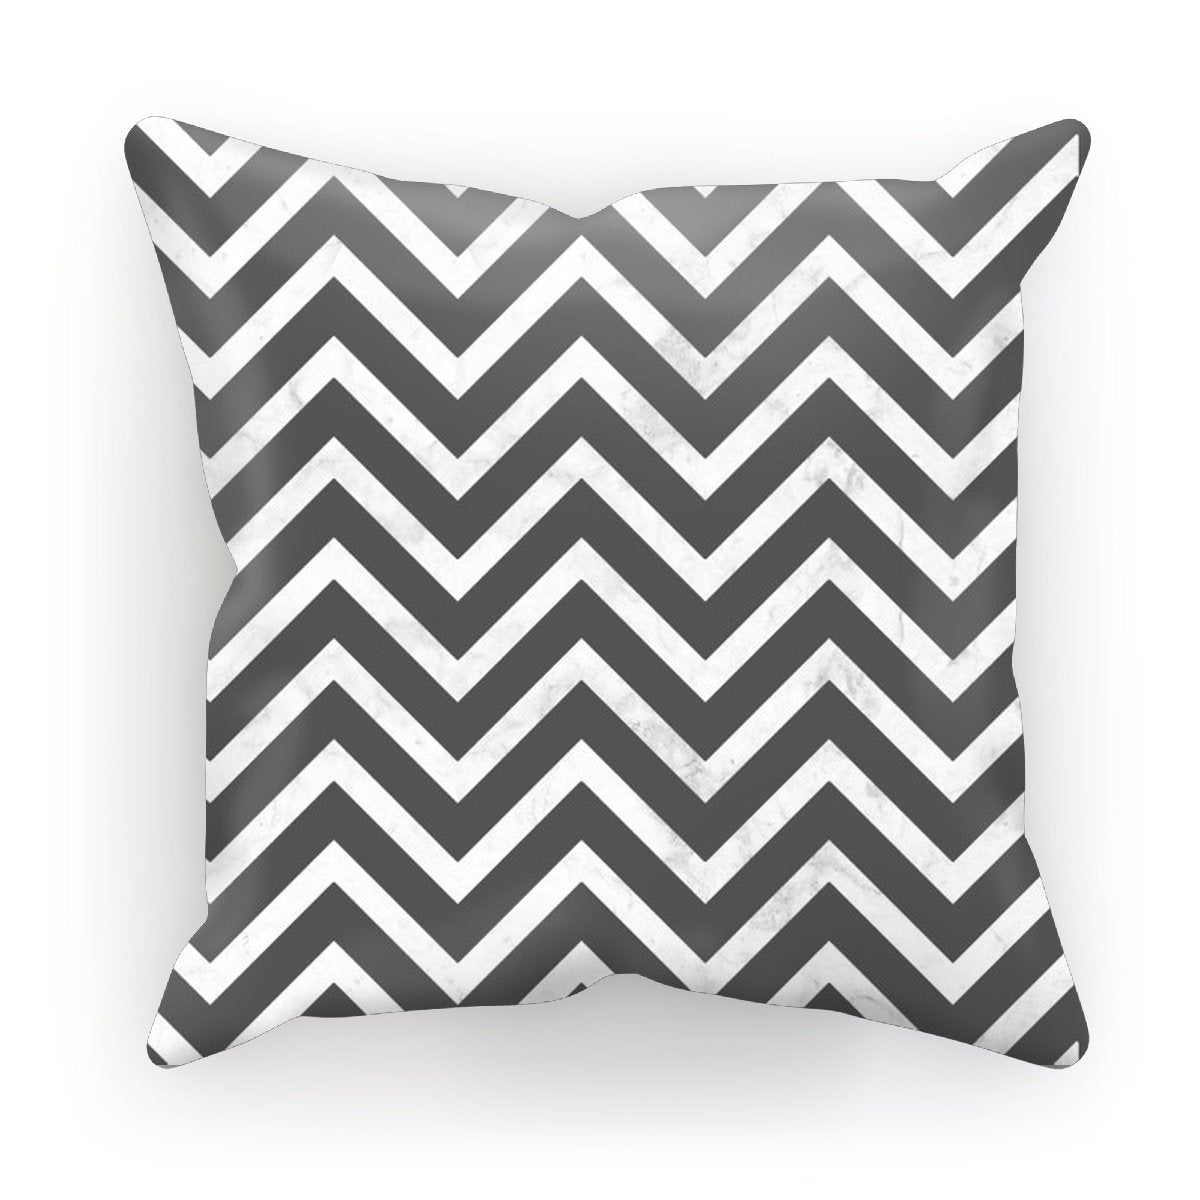 Chevron Cushion - HusLiving